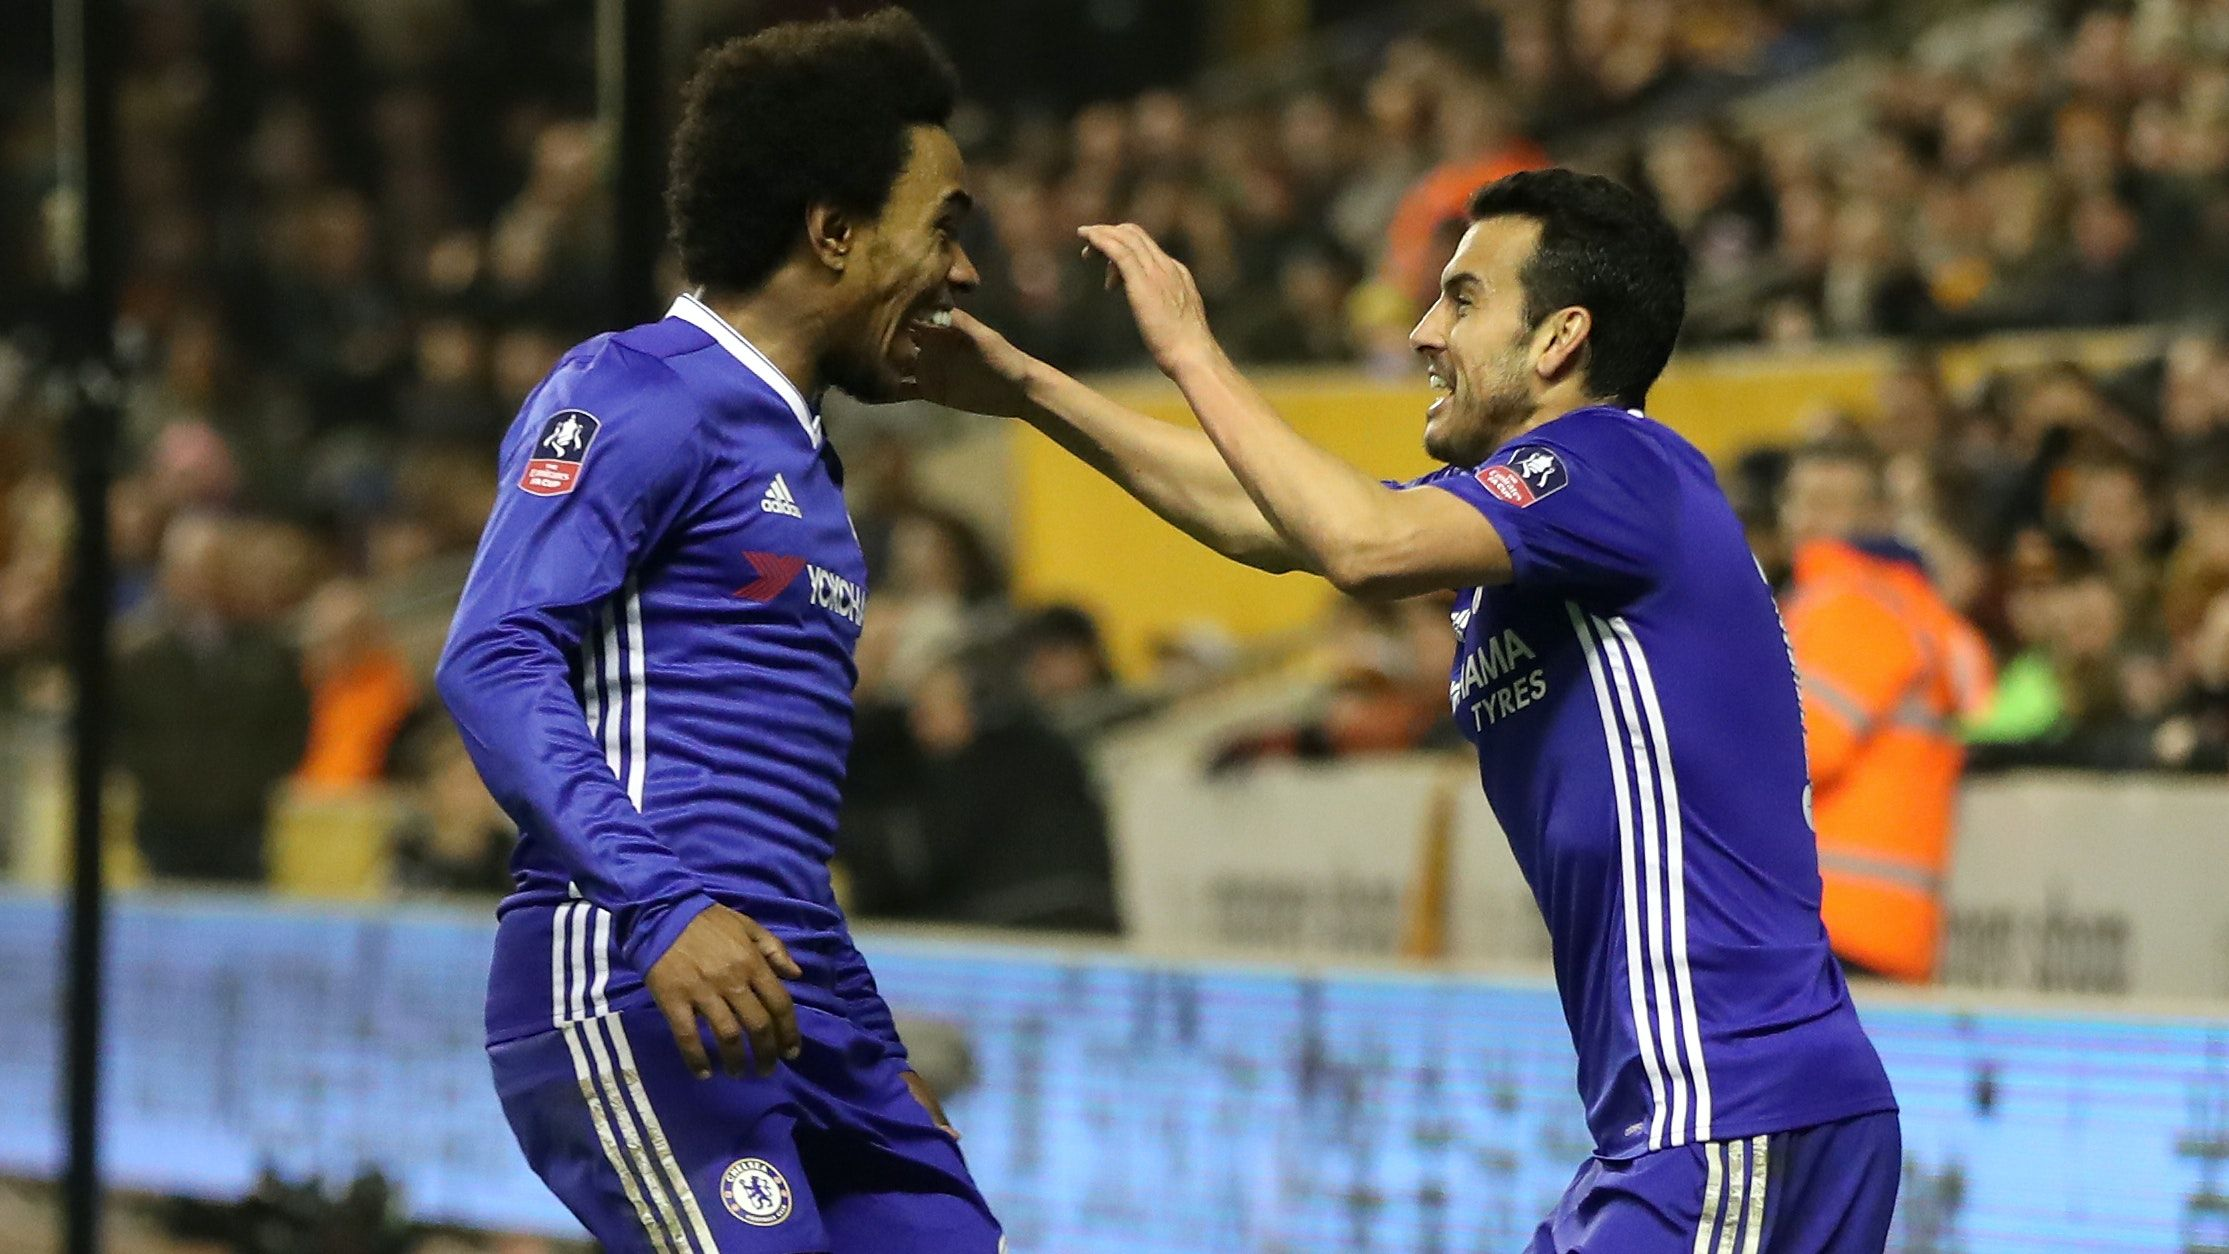 Chelsea extends contracts with Willian and Pedro until the end of season